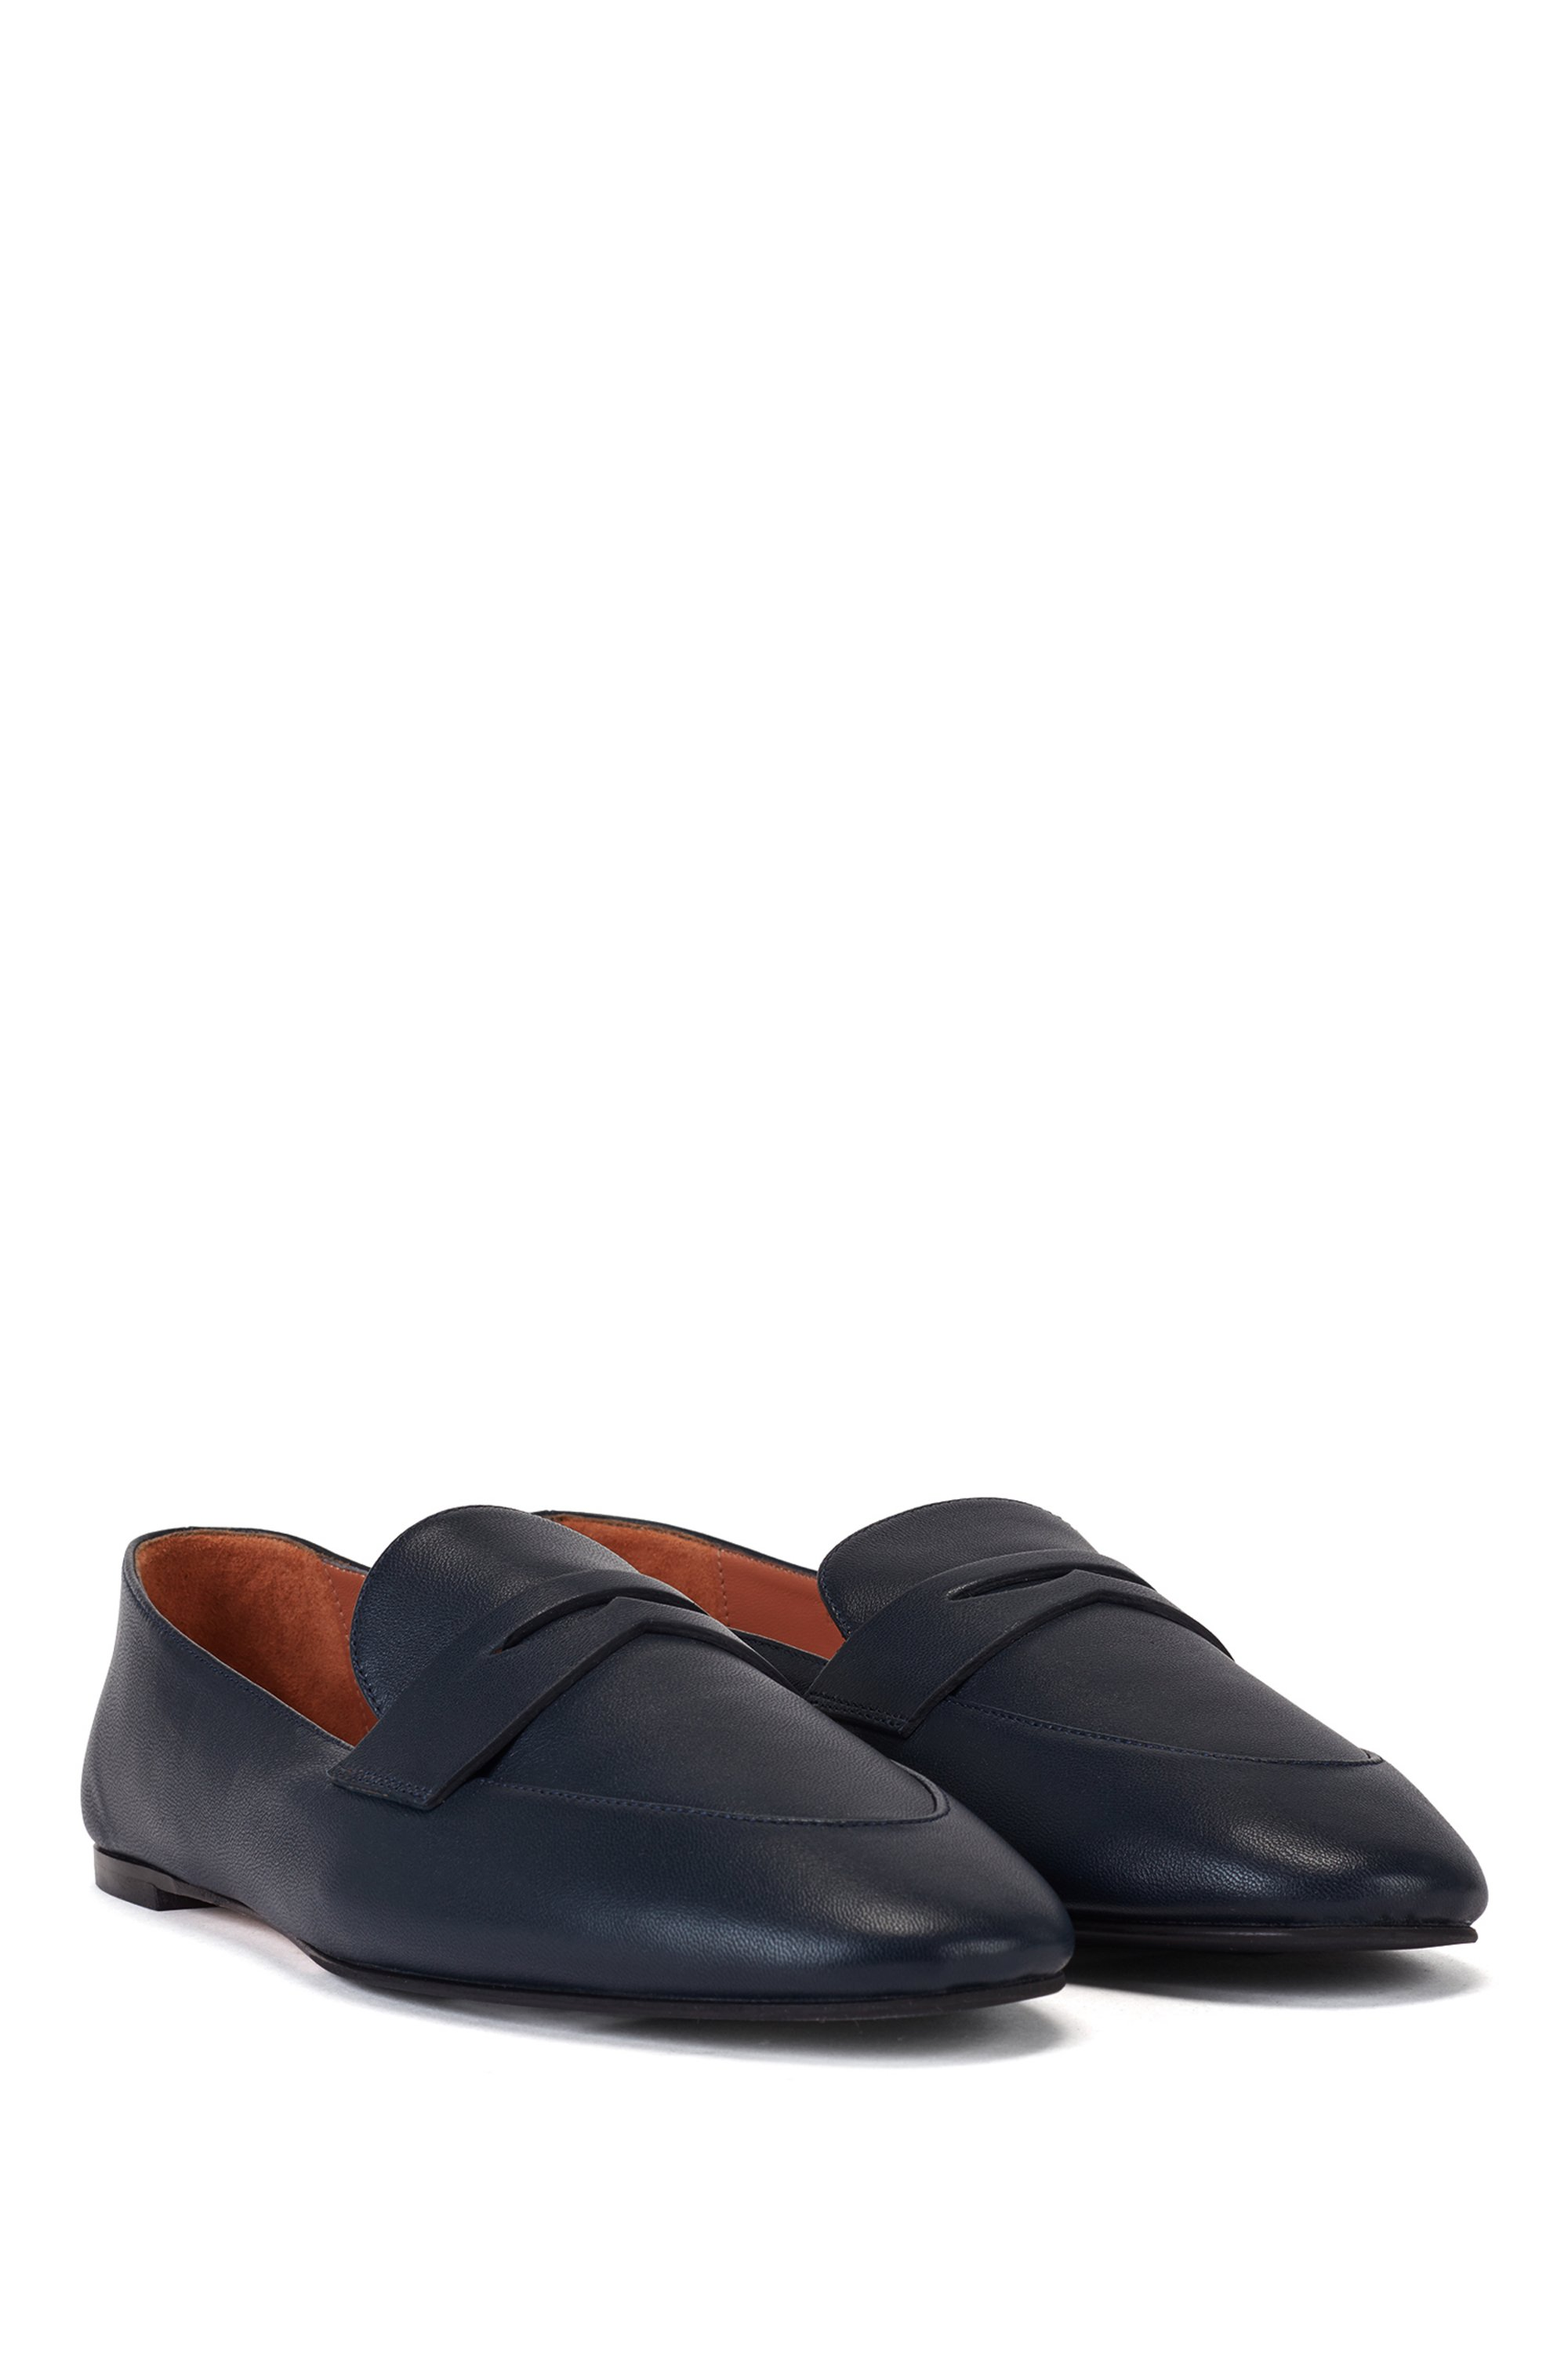 Italian-leather loafers with penny trim